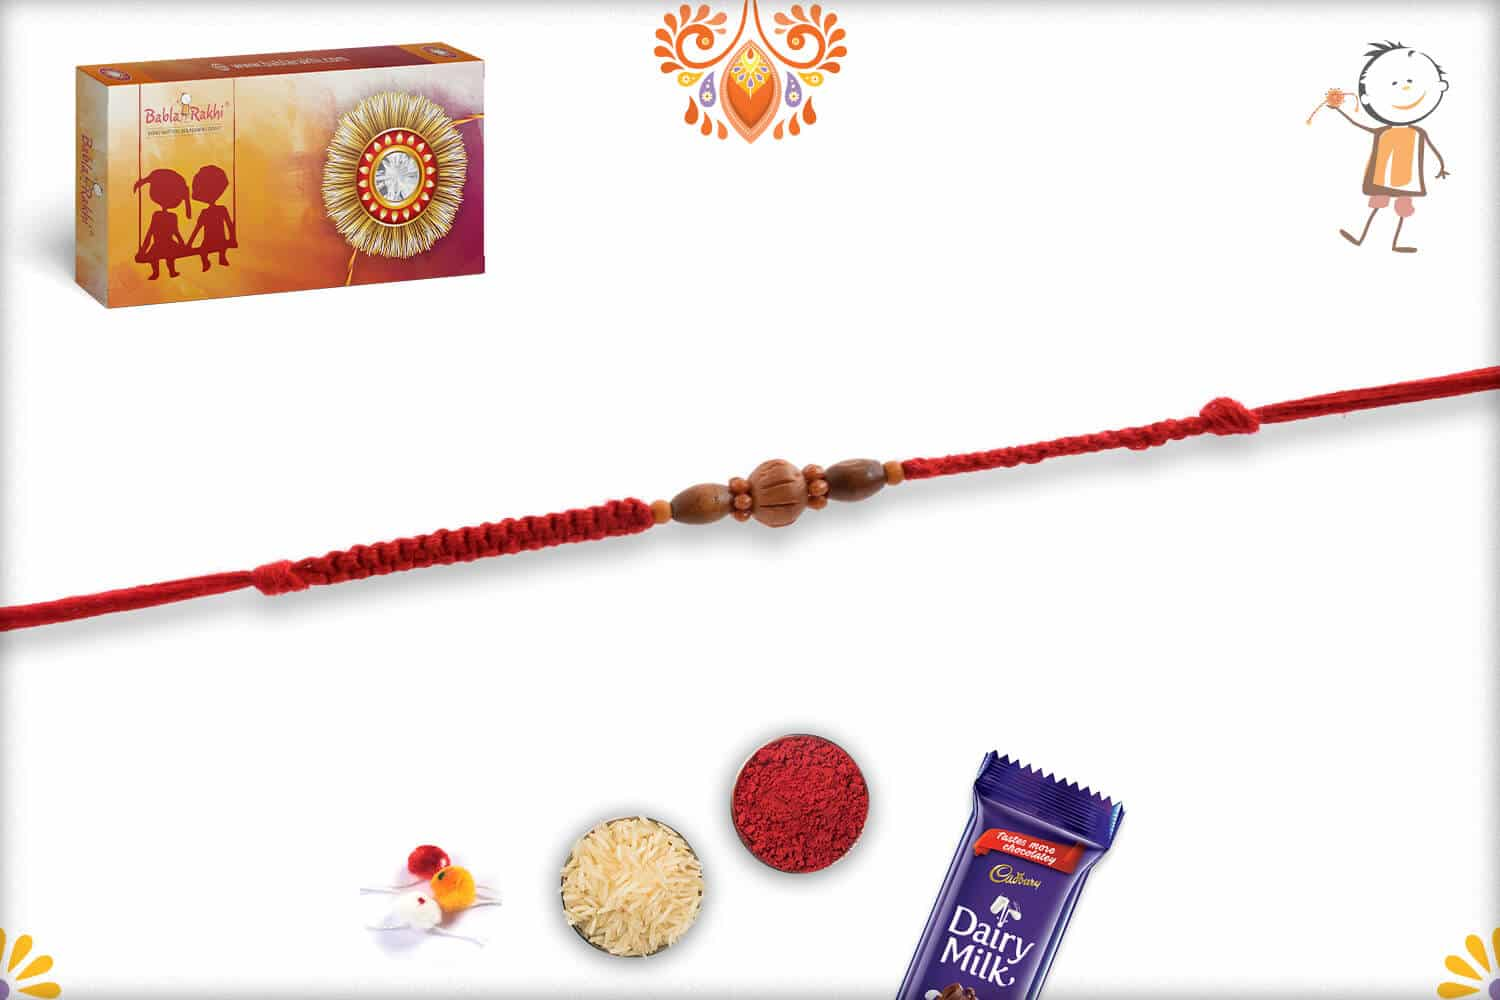 Simple Sandalwood Rakhi with Uniquely Knotted Thread - Babla Rakhi